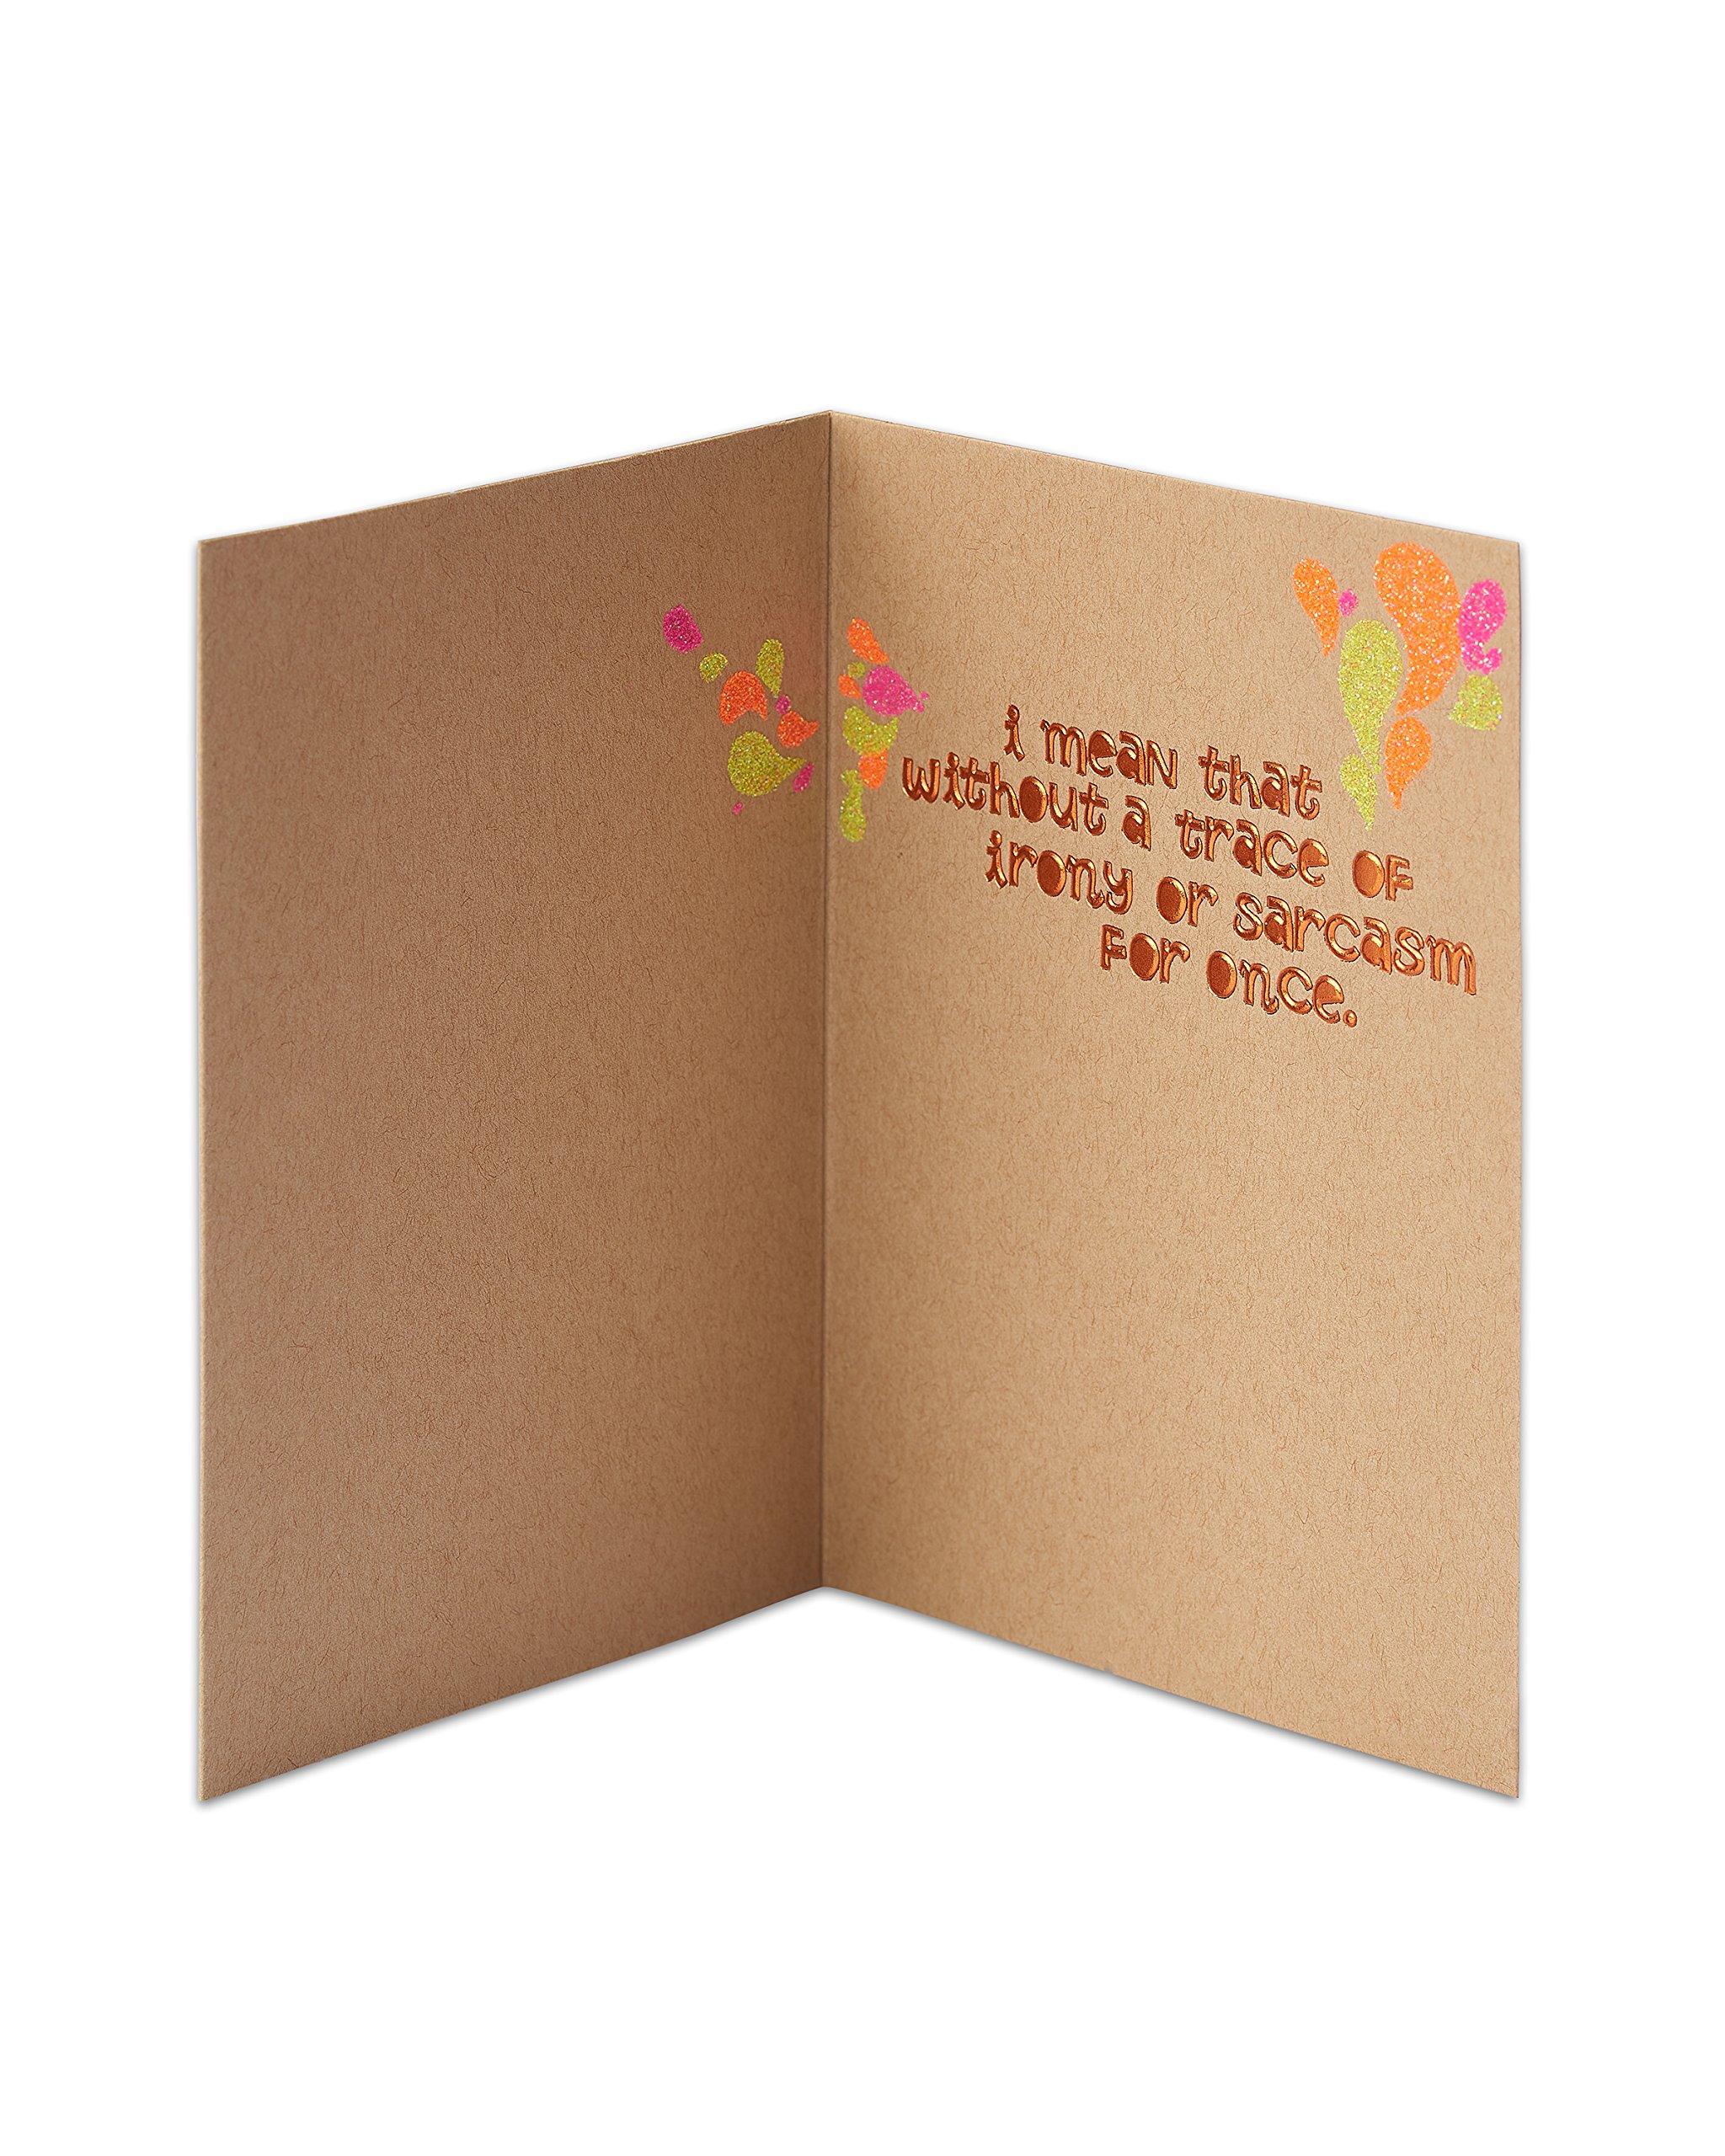 American Greetings You're Awesome Birthday Card with Glitter - 5856772 by American Greetings (Image #2)